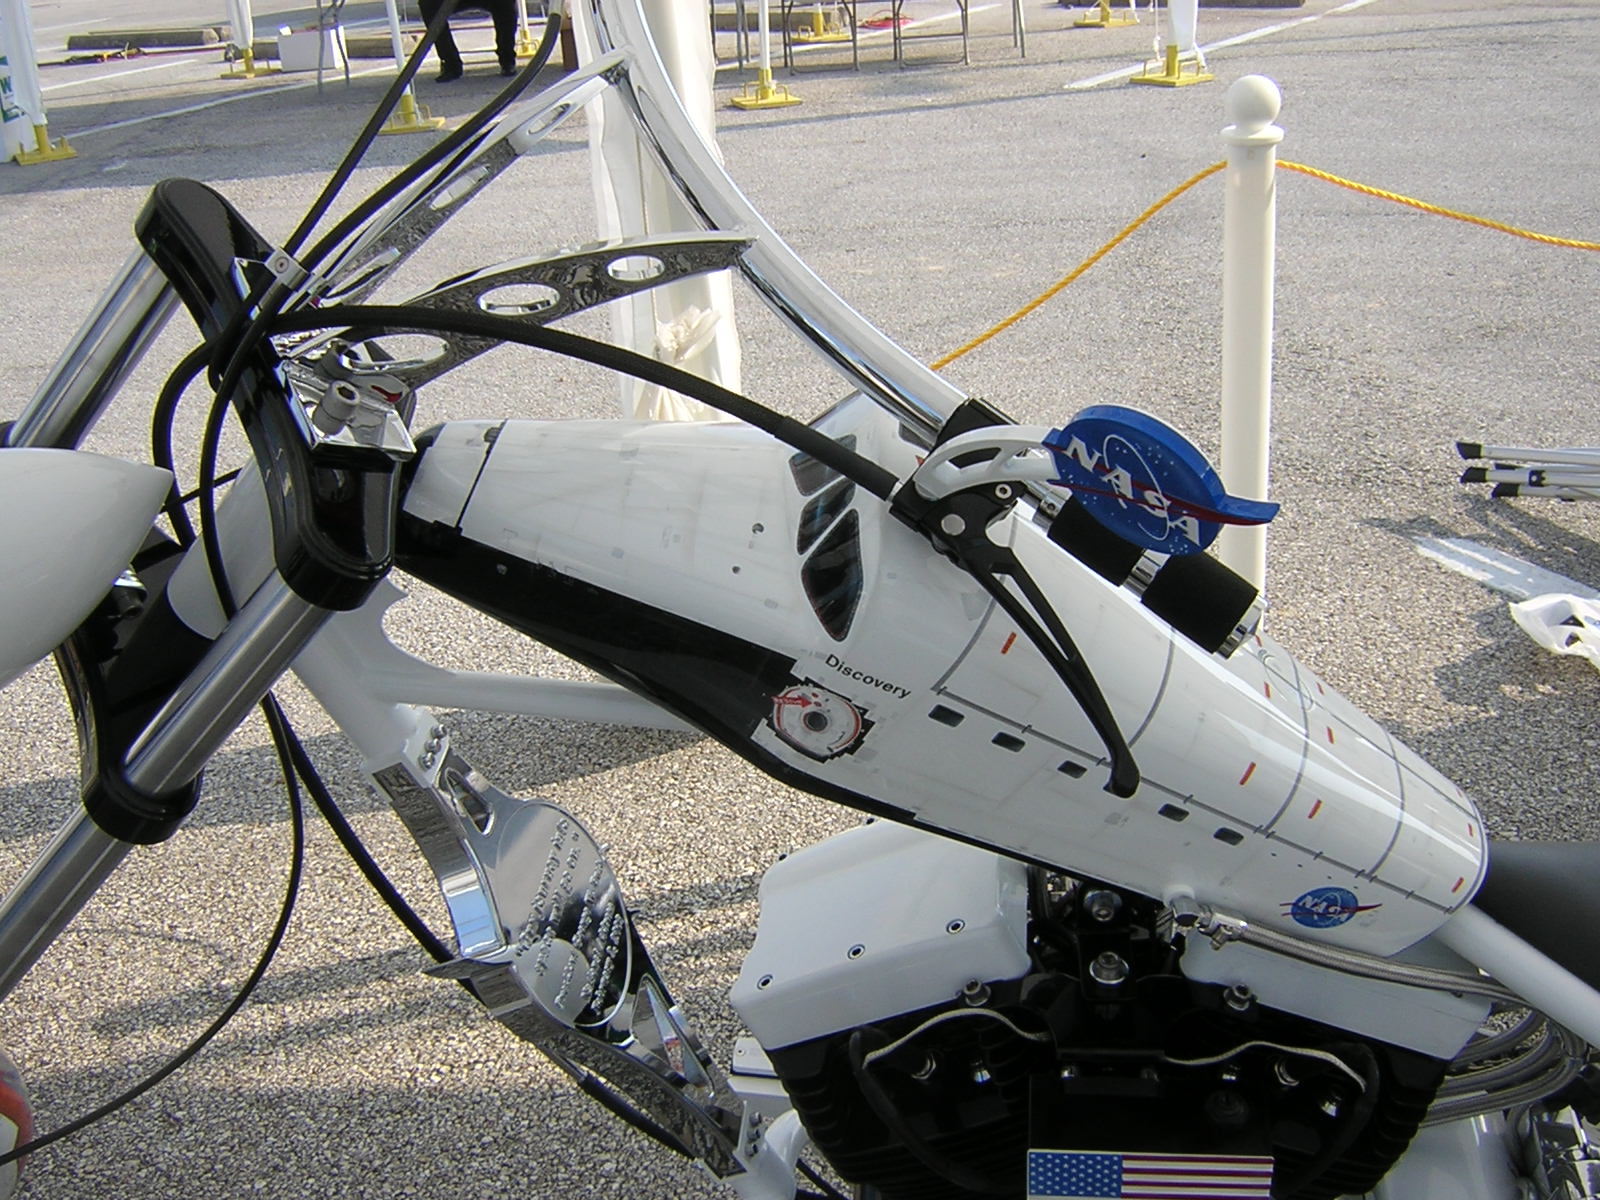 space shuttle bike occ - photo #10